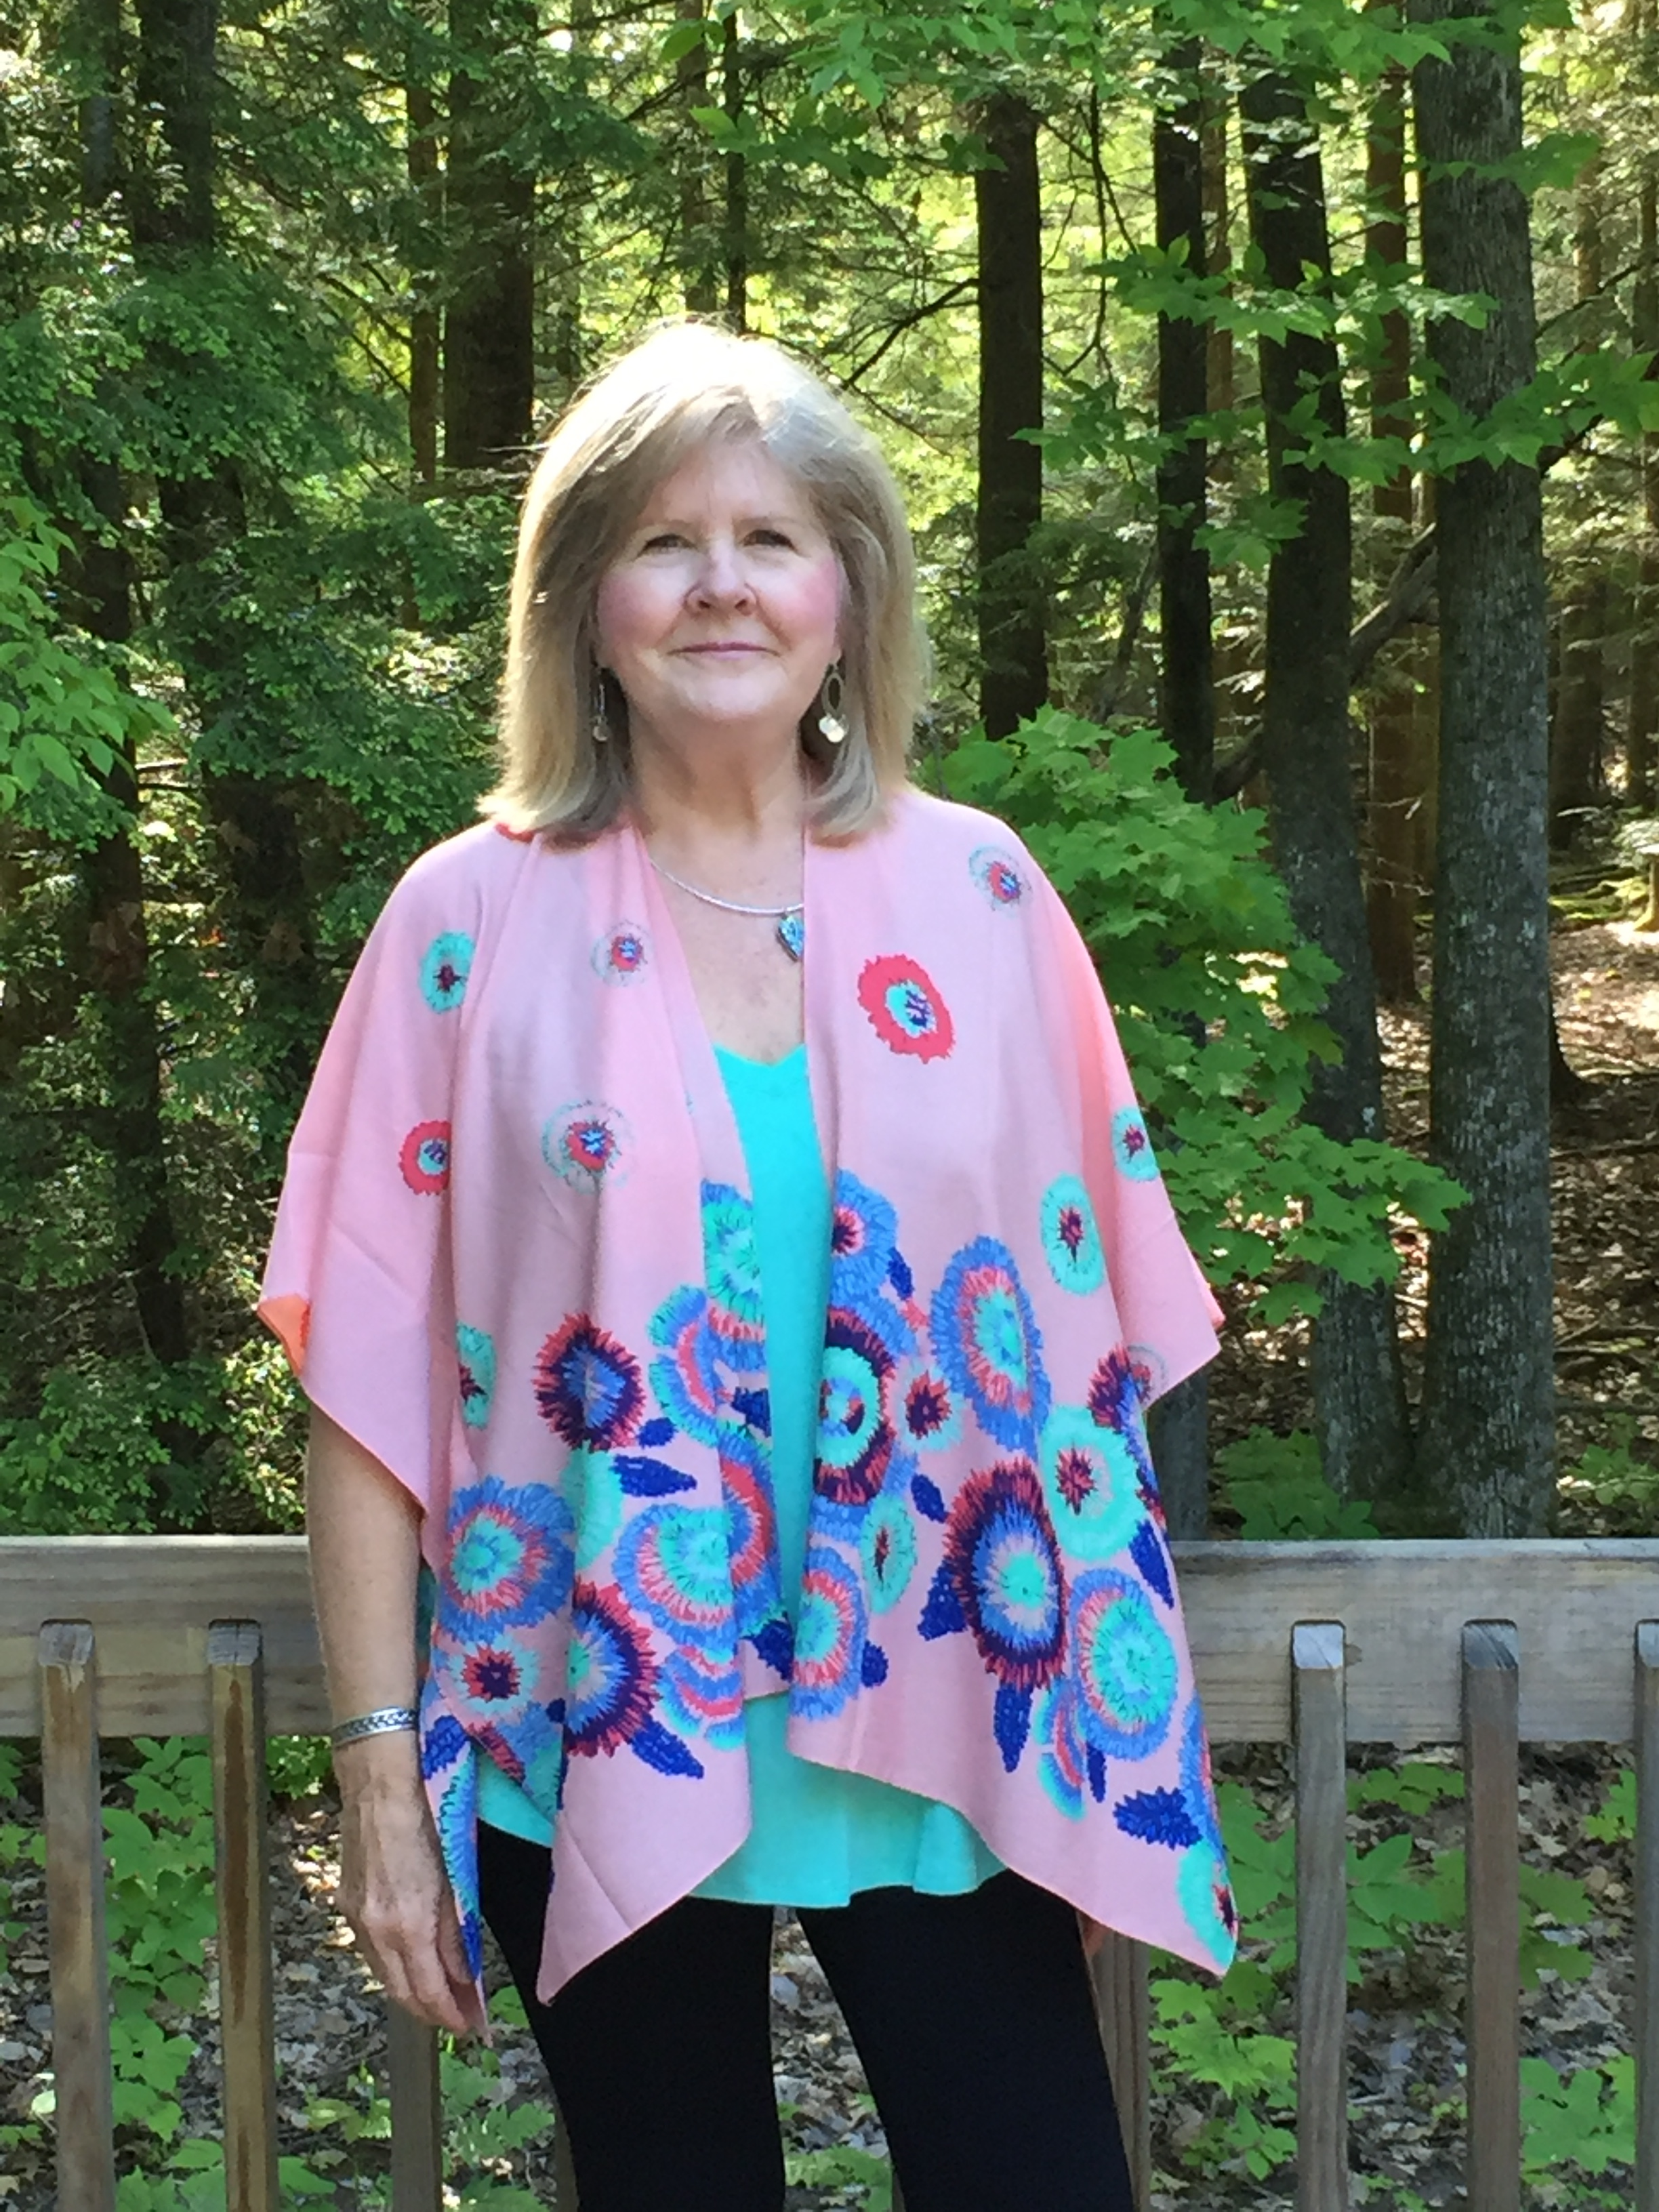 Thanks to Nancy Kline for contacting Visual Faith Ministry and sharing the story of how God has called her and is equipping her for a prayer ministry. Your simple encouragement allows all of us to step out of our comfort zone because the Holy Spirit leads on…   Nancy lives in Elk Rapids, Michigan and is a wife and mom to 2 married daughters. She is blessed with 6 grandchildren. The active and alive faith life of all in her family is something she gives thanks for daily. She has been blessed to grow with a family involved with mission trip experiences. Nancy was a middle school educator and then later a school counselor. She gives thanks for her personal relationship with her Lord and credits this gift to allow her to live with chronic pain for the last 14 years. To God be the Glory.    We also give thanks for Pastor Craig and Kori Trierweiler and their list of Sabbatical Prayers -this was the initiative for this project.